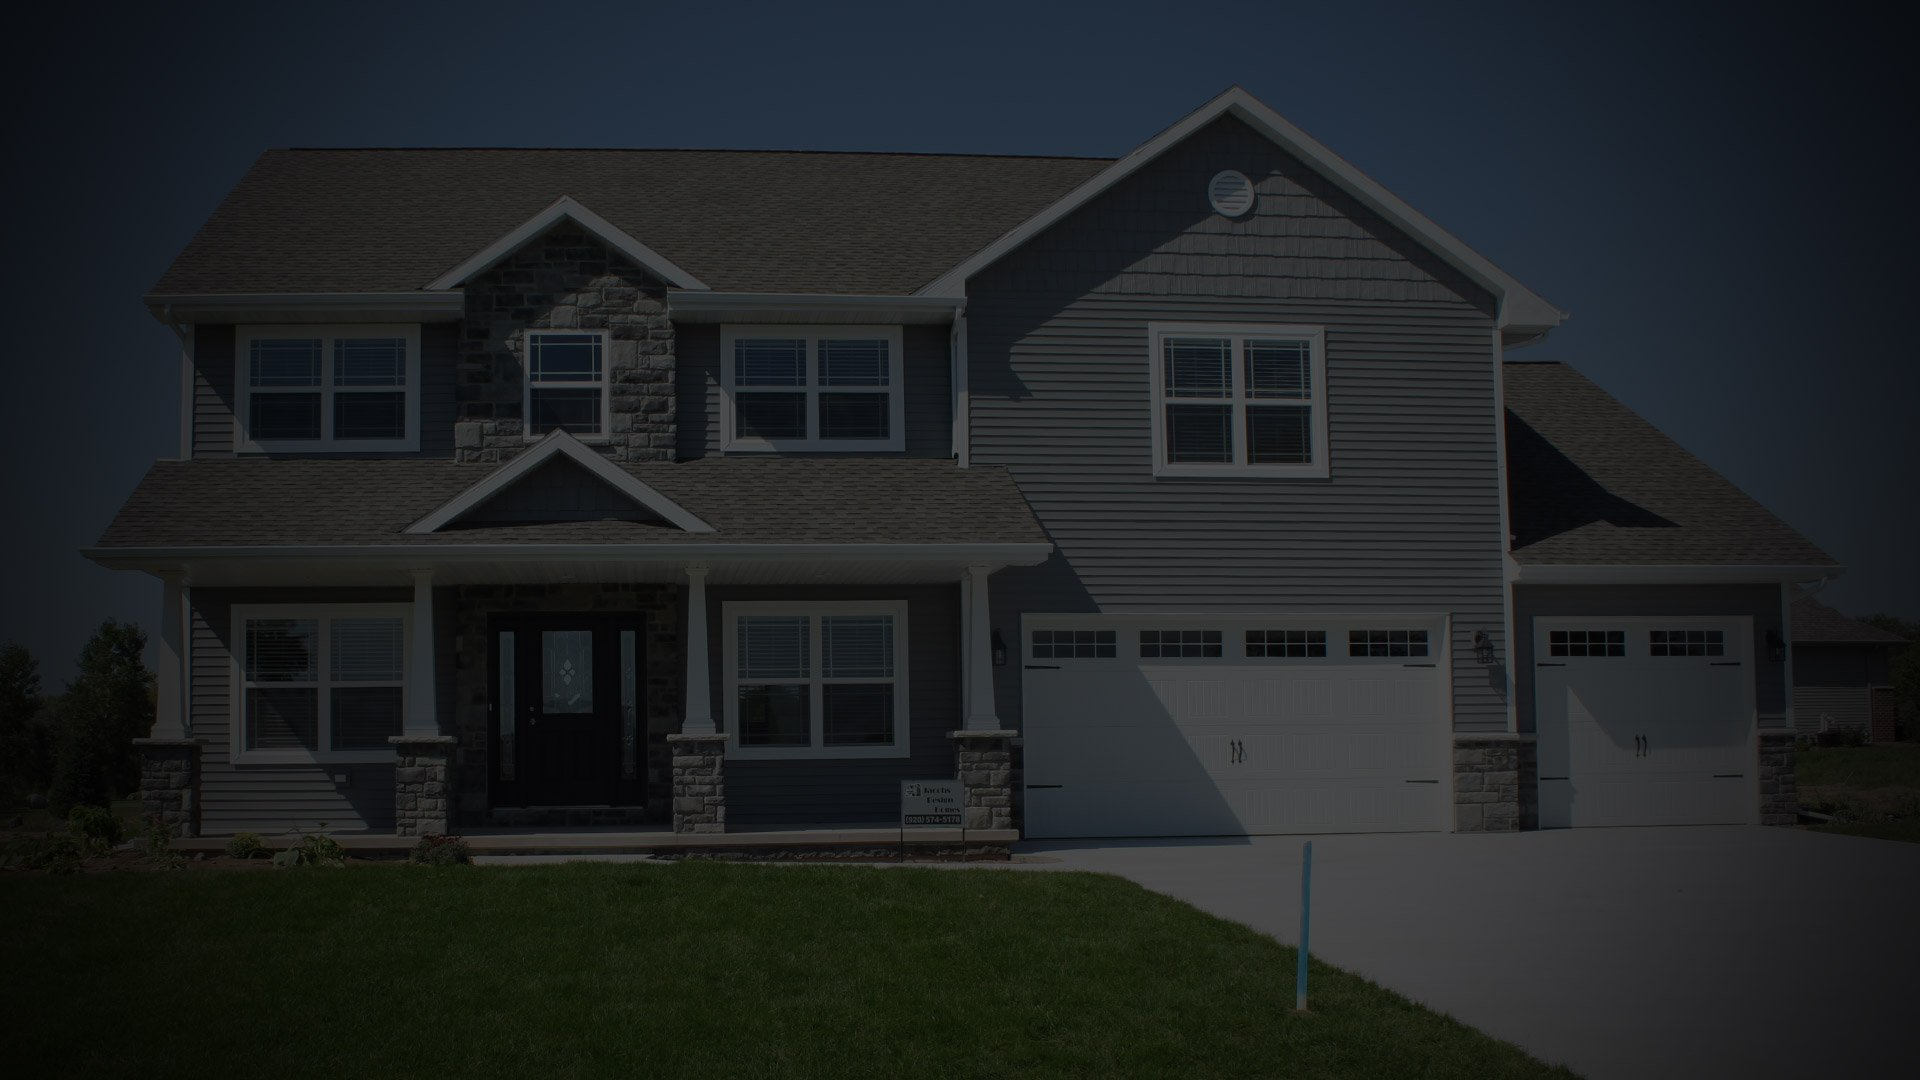 Home builder jacobs design homes appleton wi for Home builders appleton wi